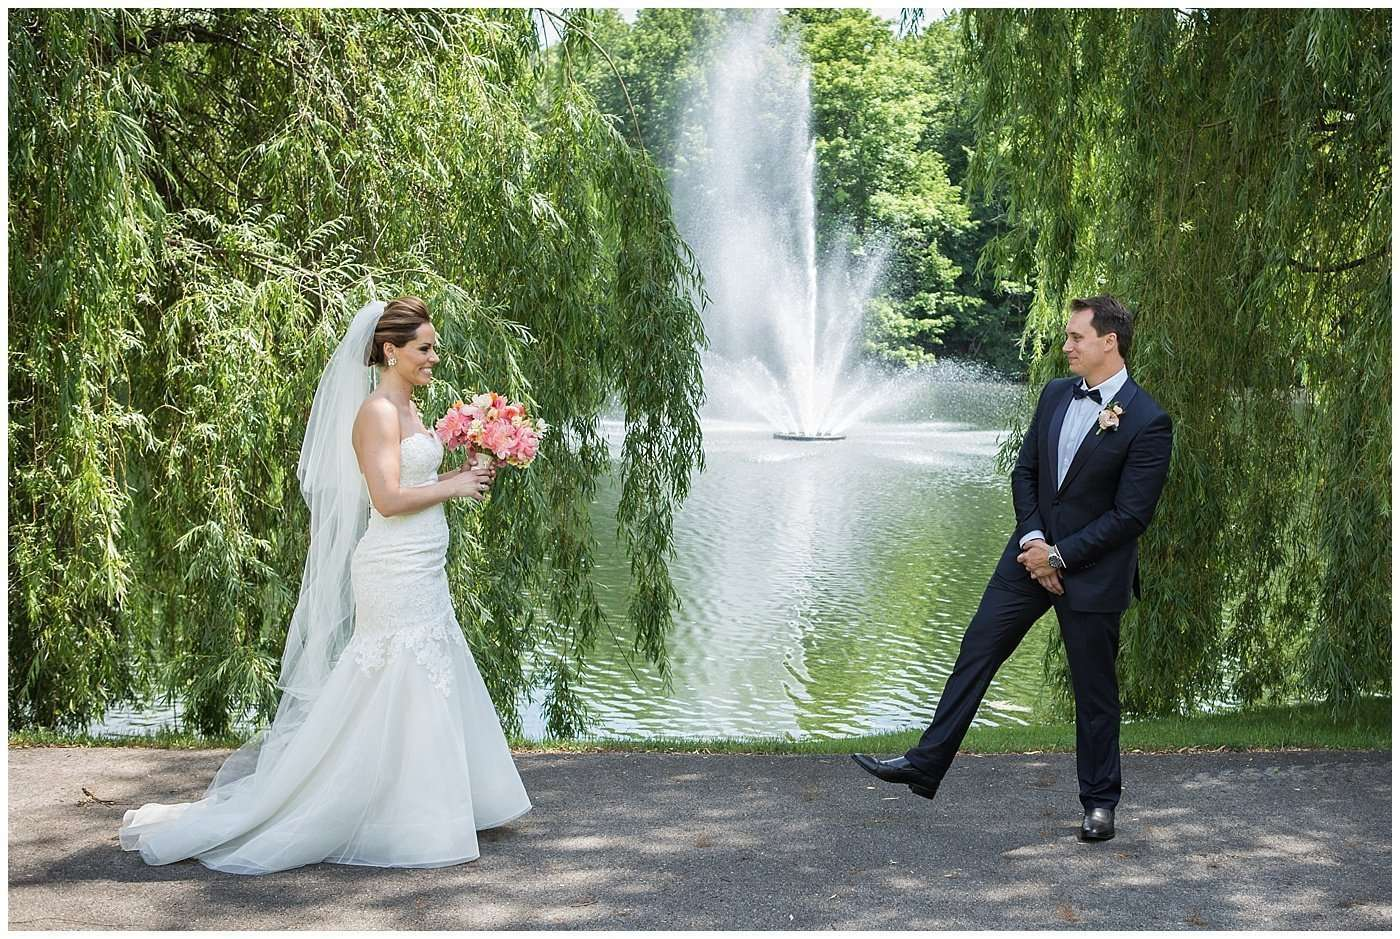 Kim & Lee | A Summer Wedding at Brookside Country Club 42